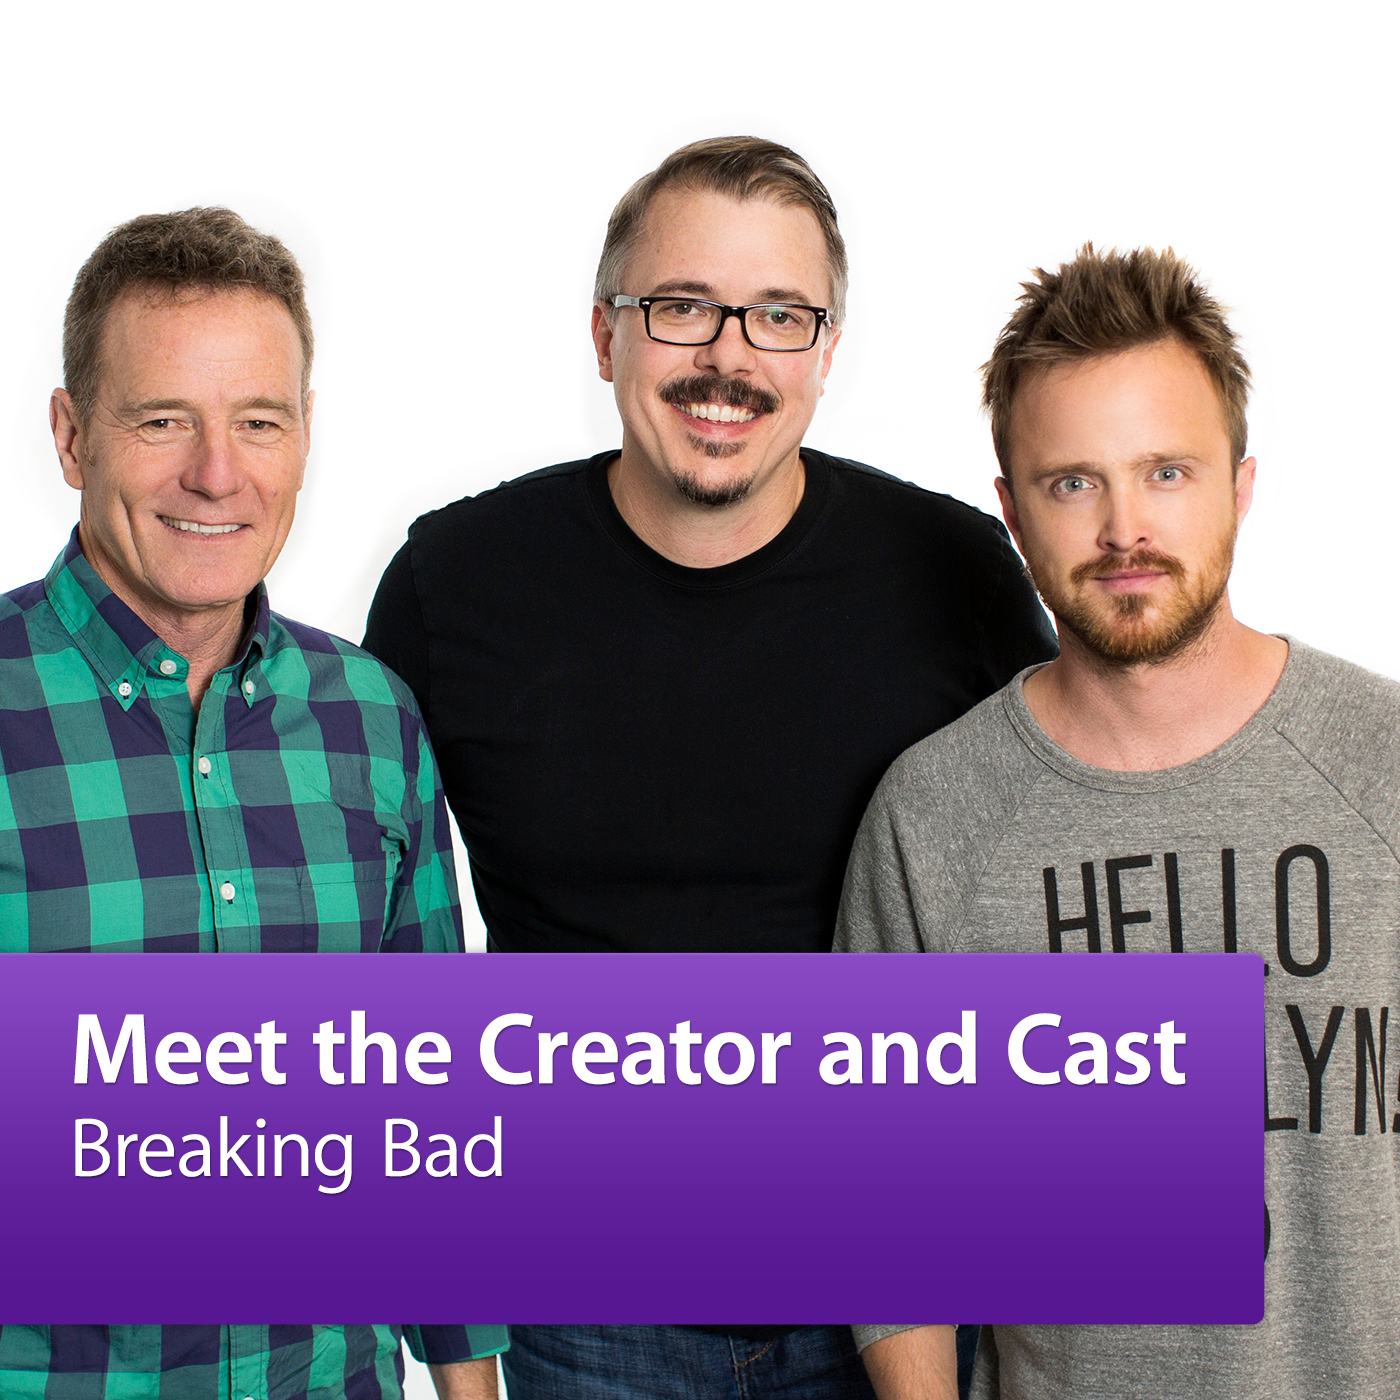 Breaking Bad: Meet the Creator and Cast